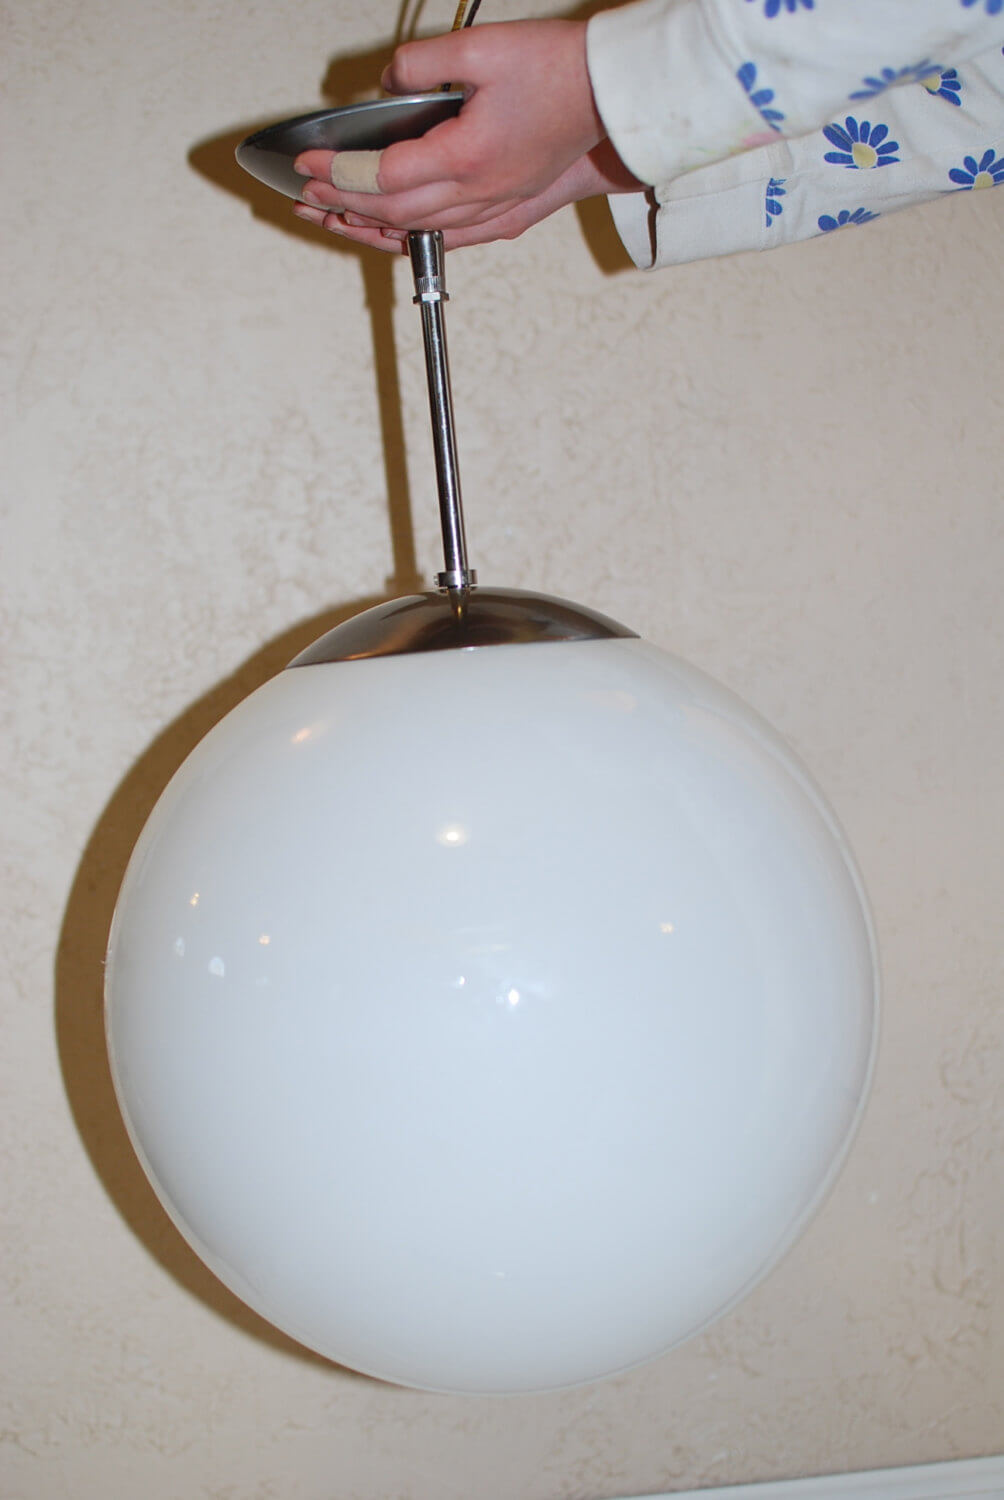 200 New Old Stock 1960s And 1970s Vintage Lights From Moon Lighting Vintage On Etsy Retro